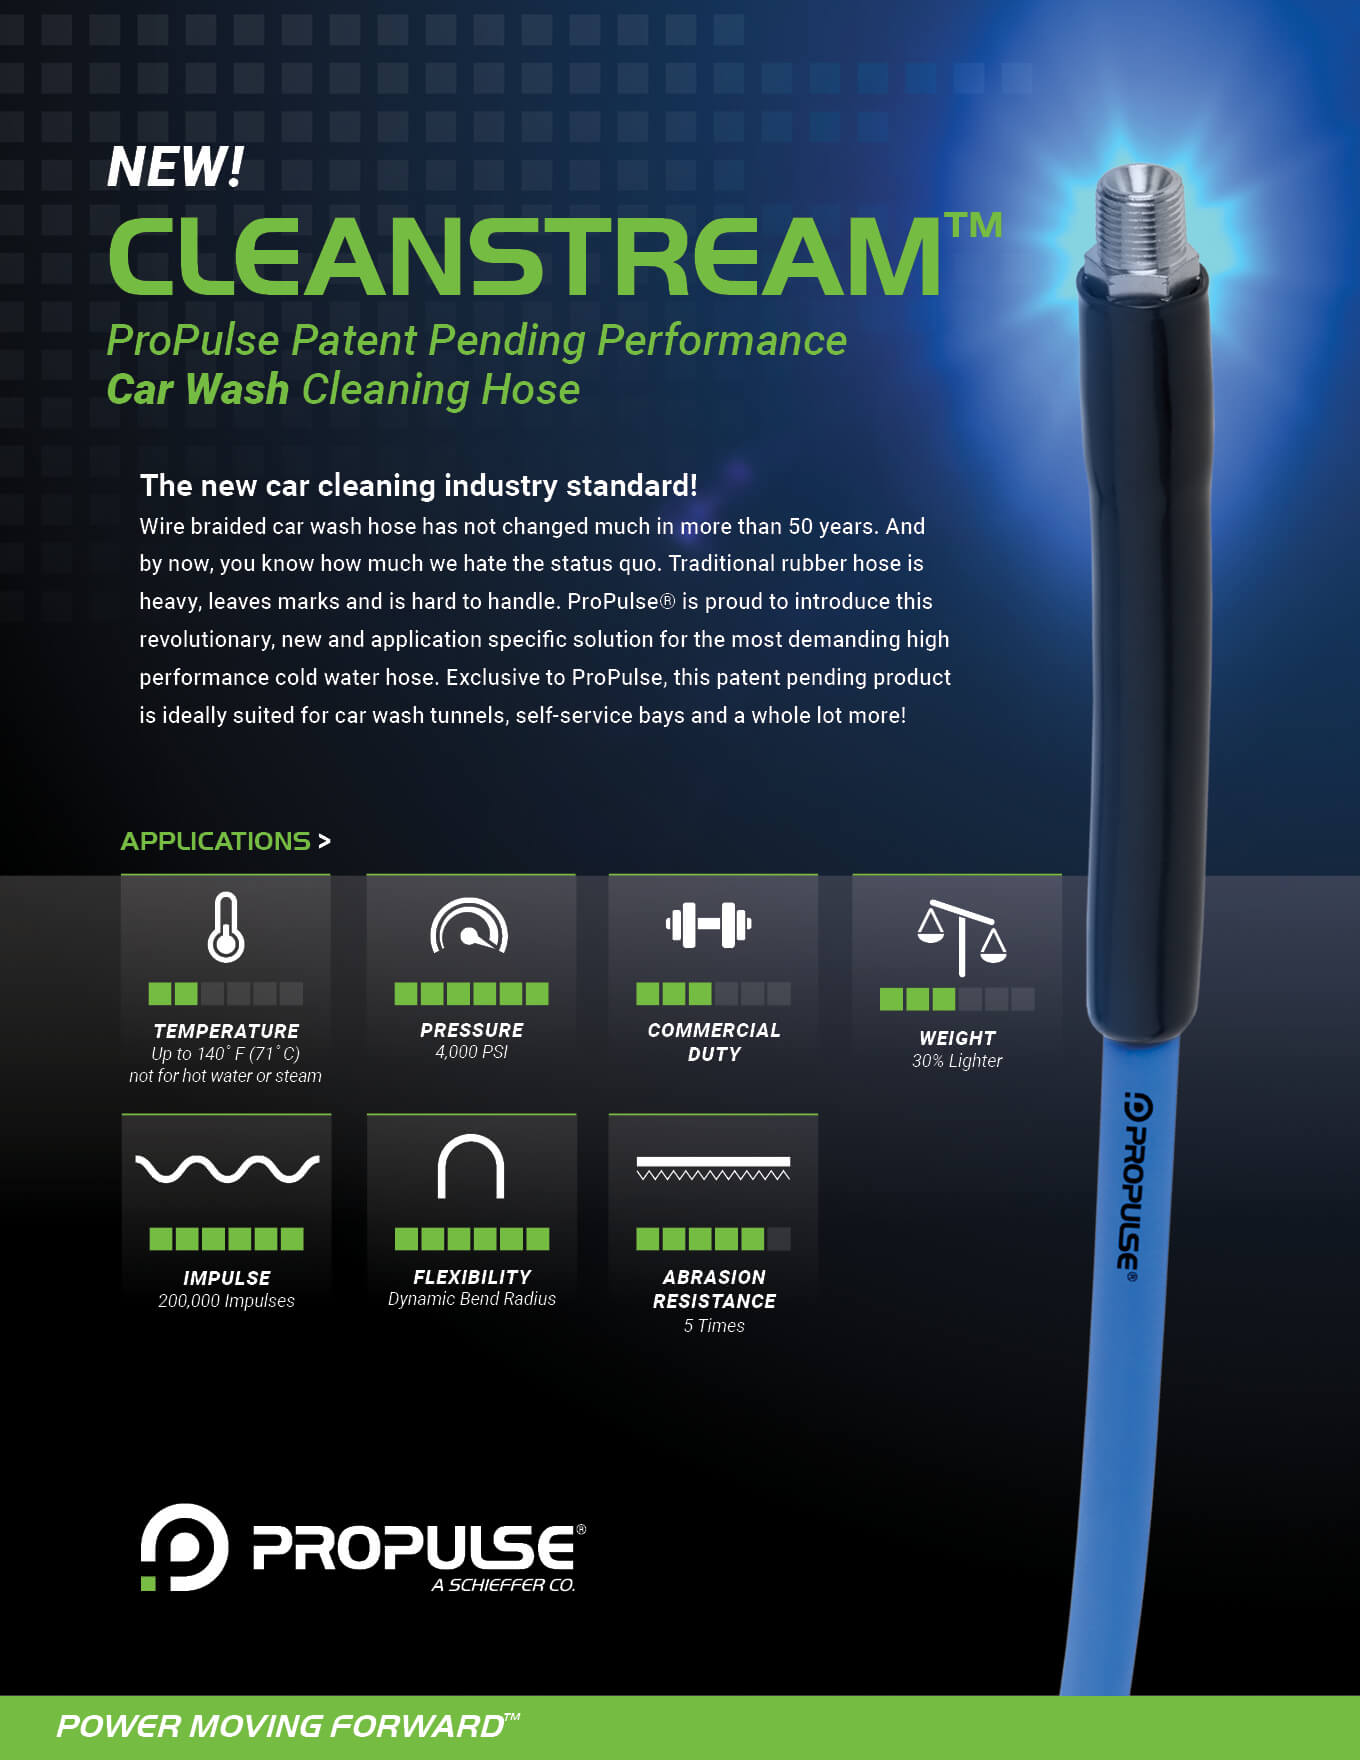 Cleanstream Performance Car Wash Cleaning Hose